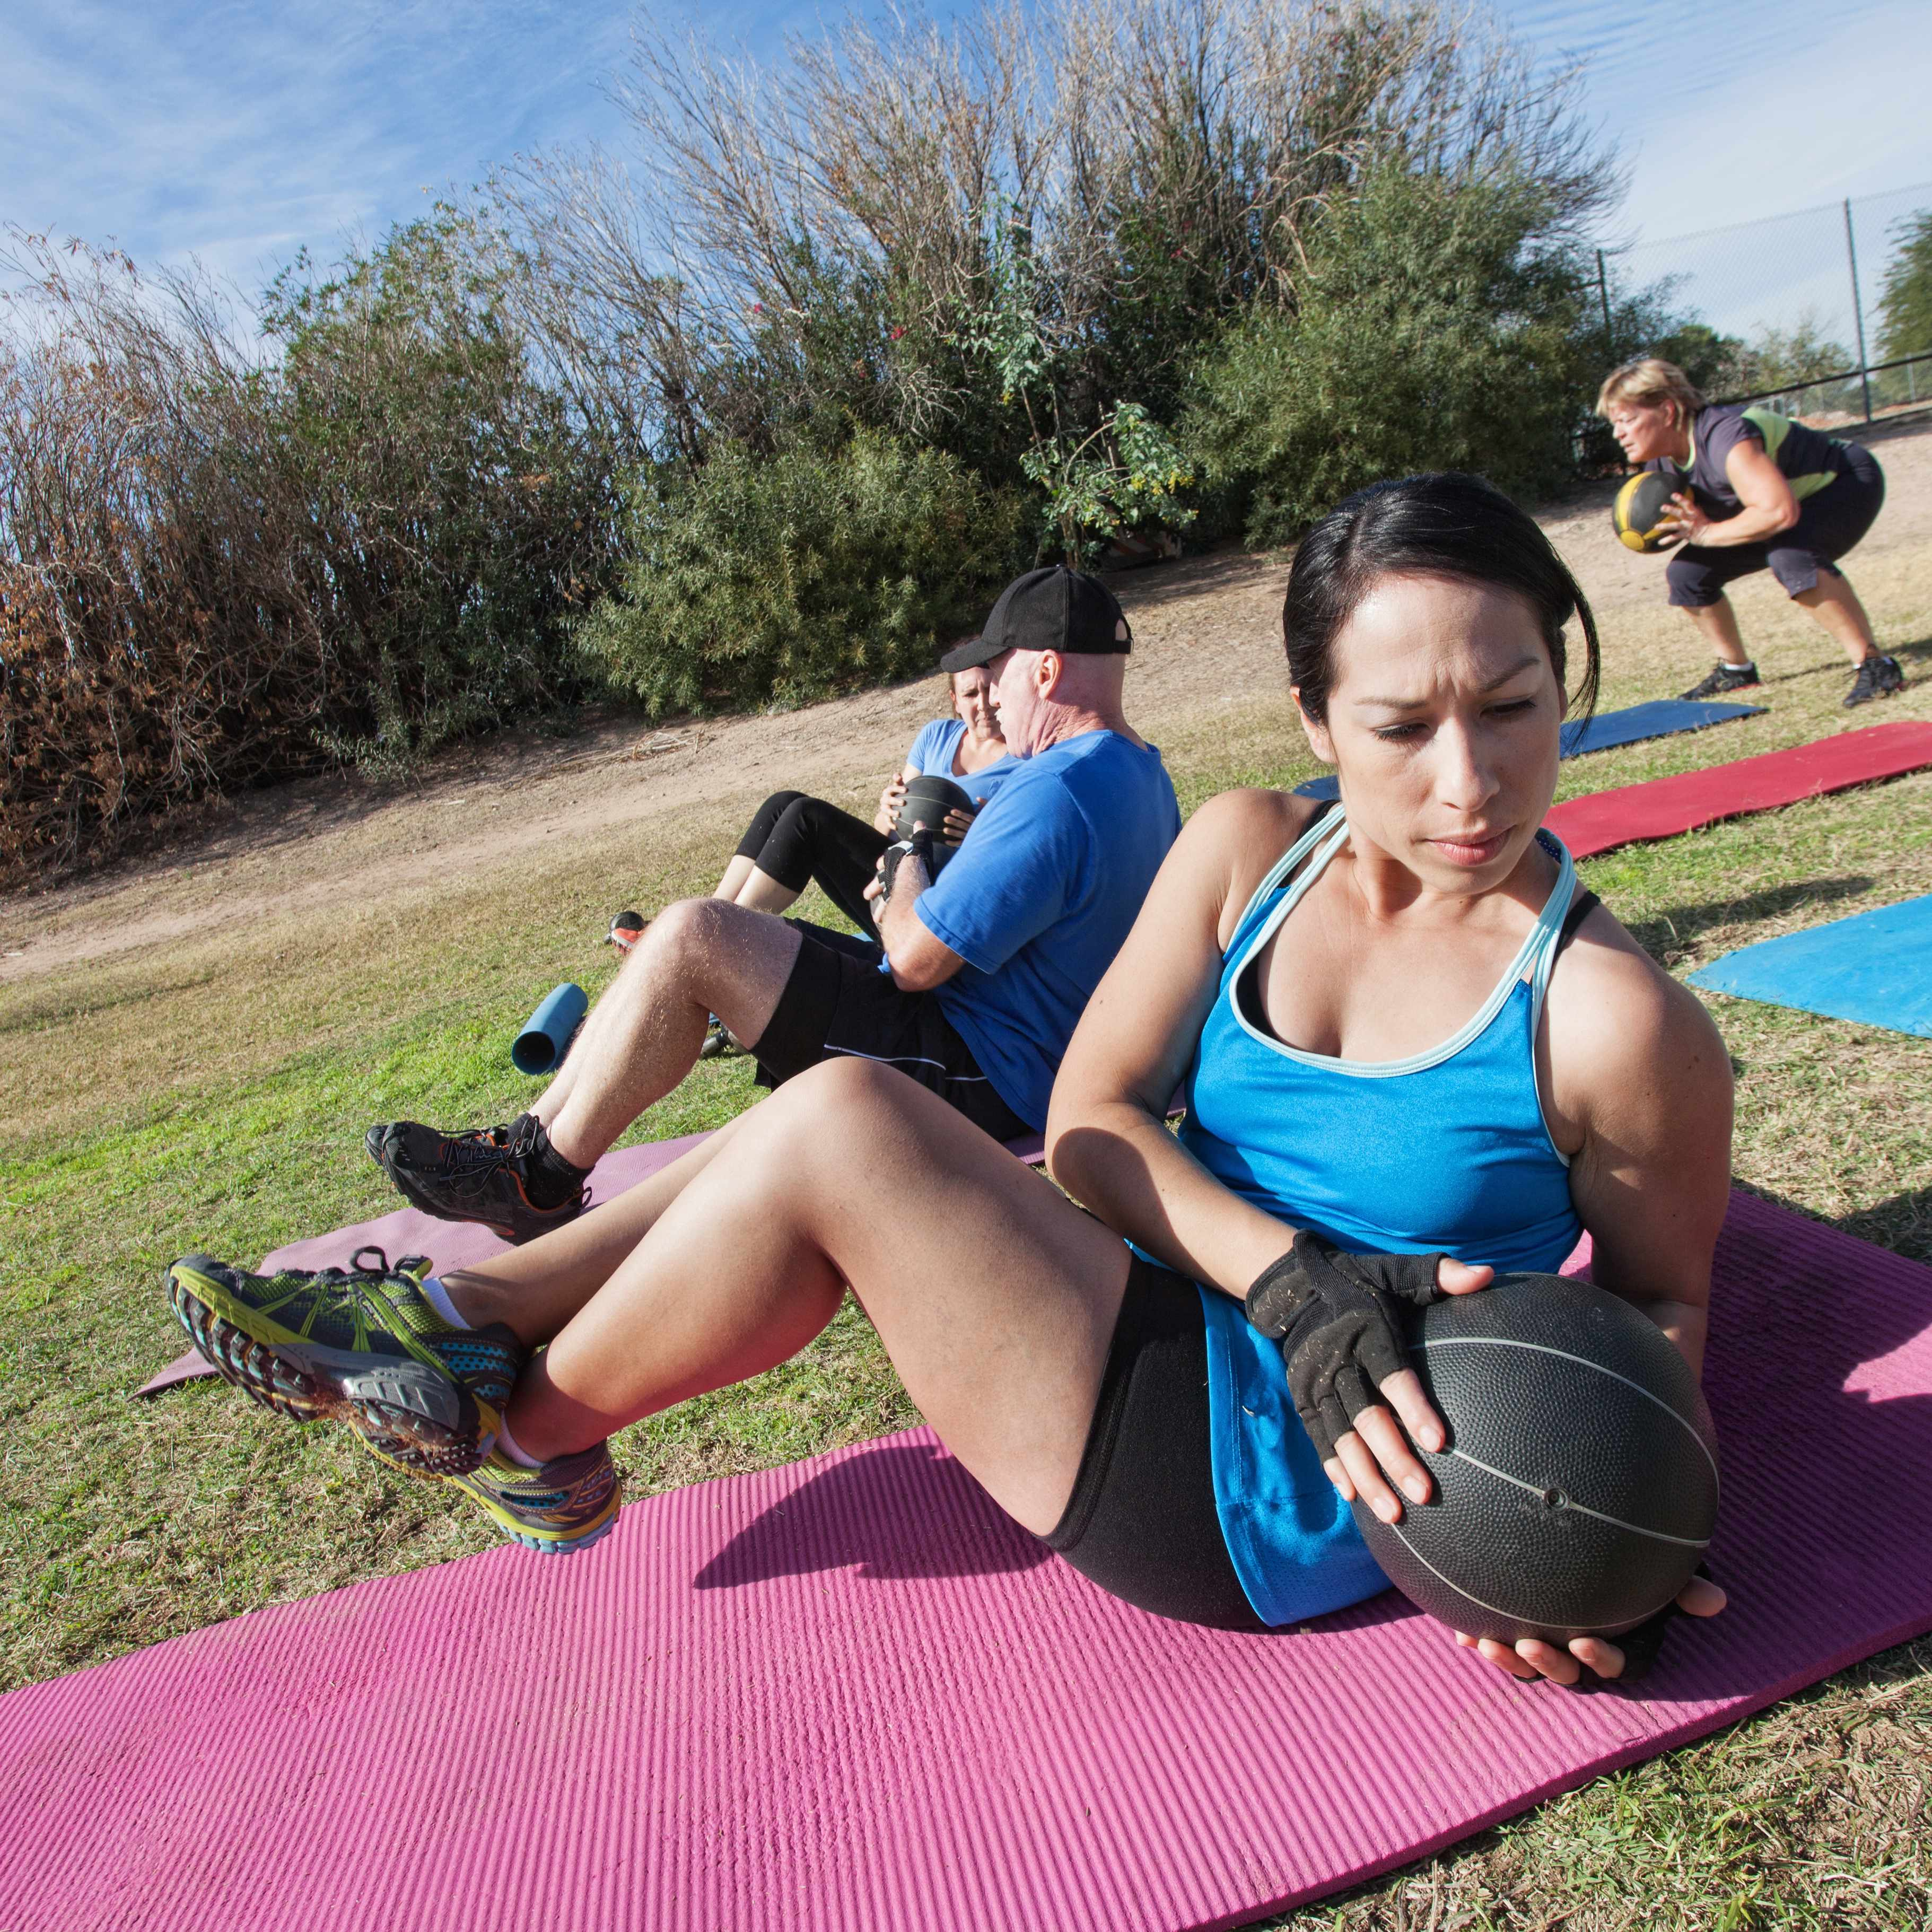 a group of people outside working out, strengthing core muscles